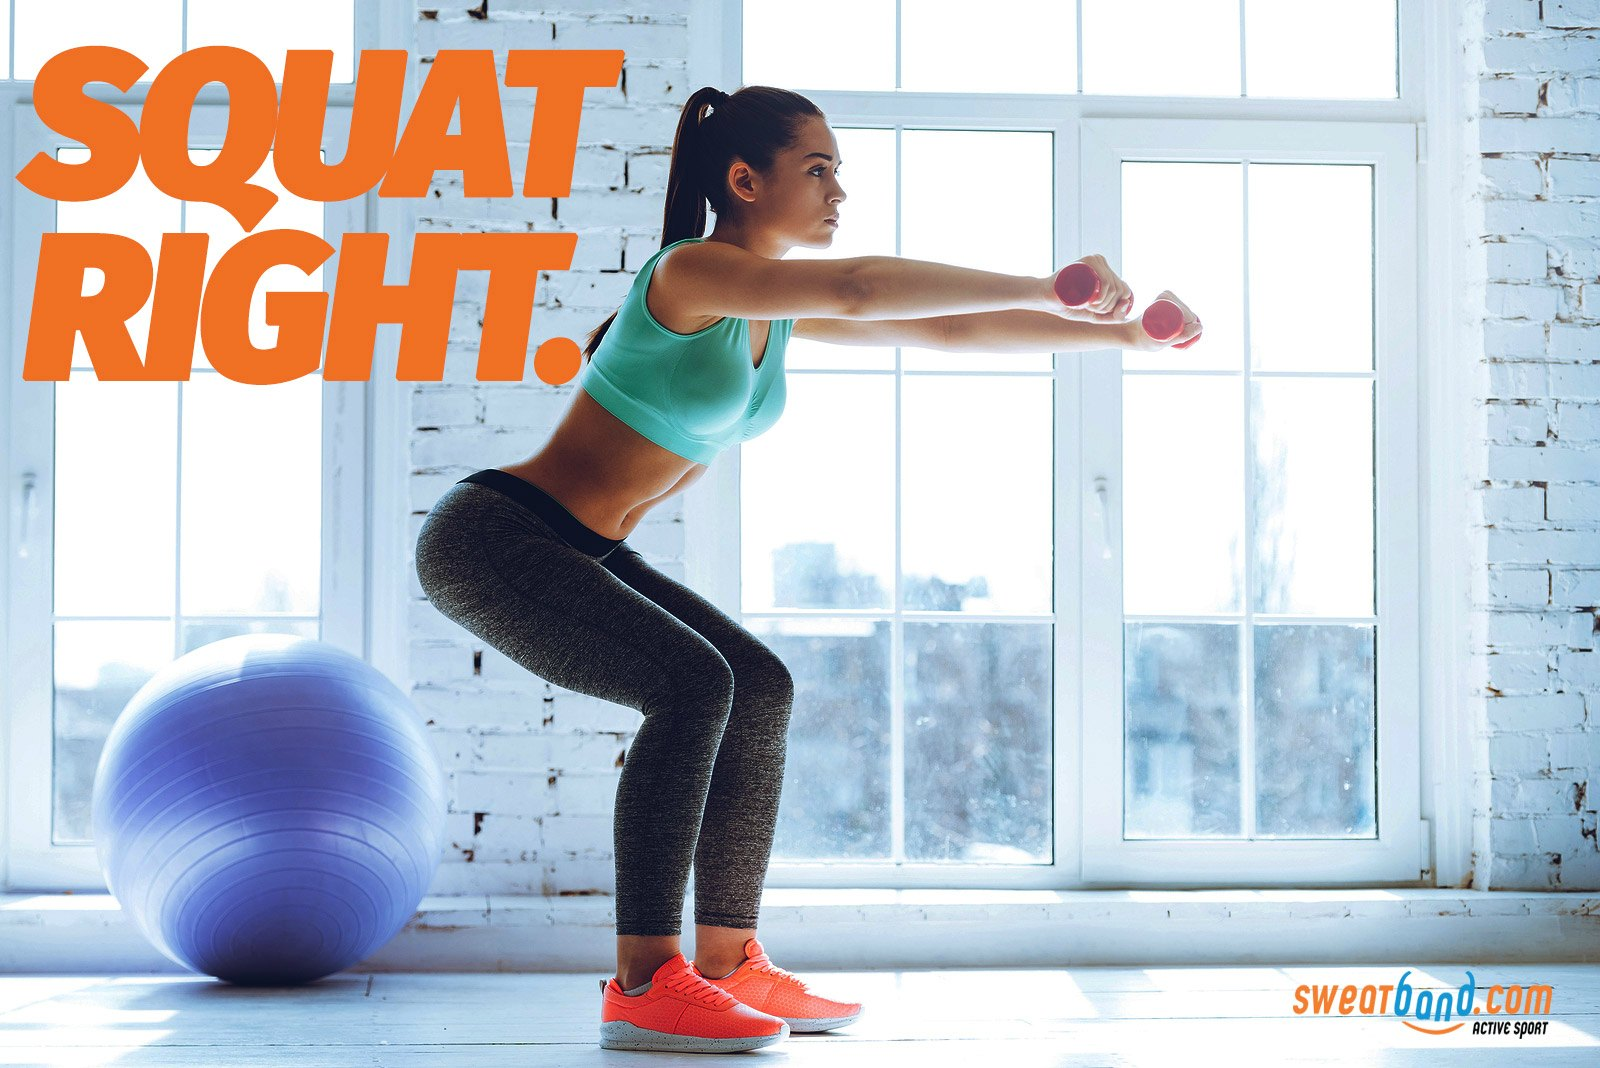 Make sure to perform squats correctly to strengthen your knees and prevent a knee injury